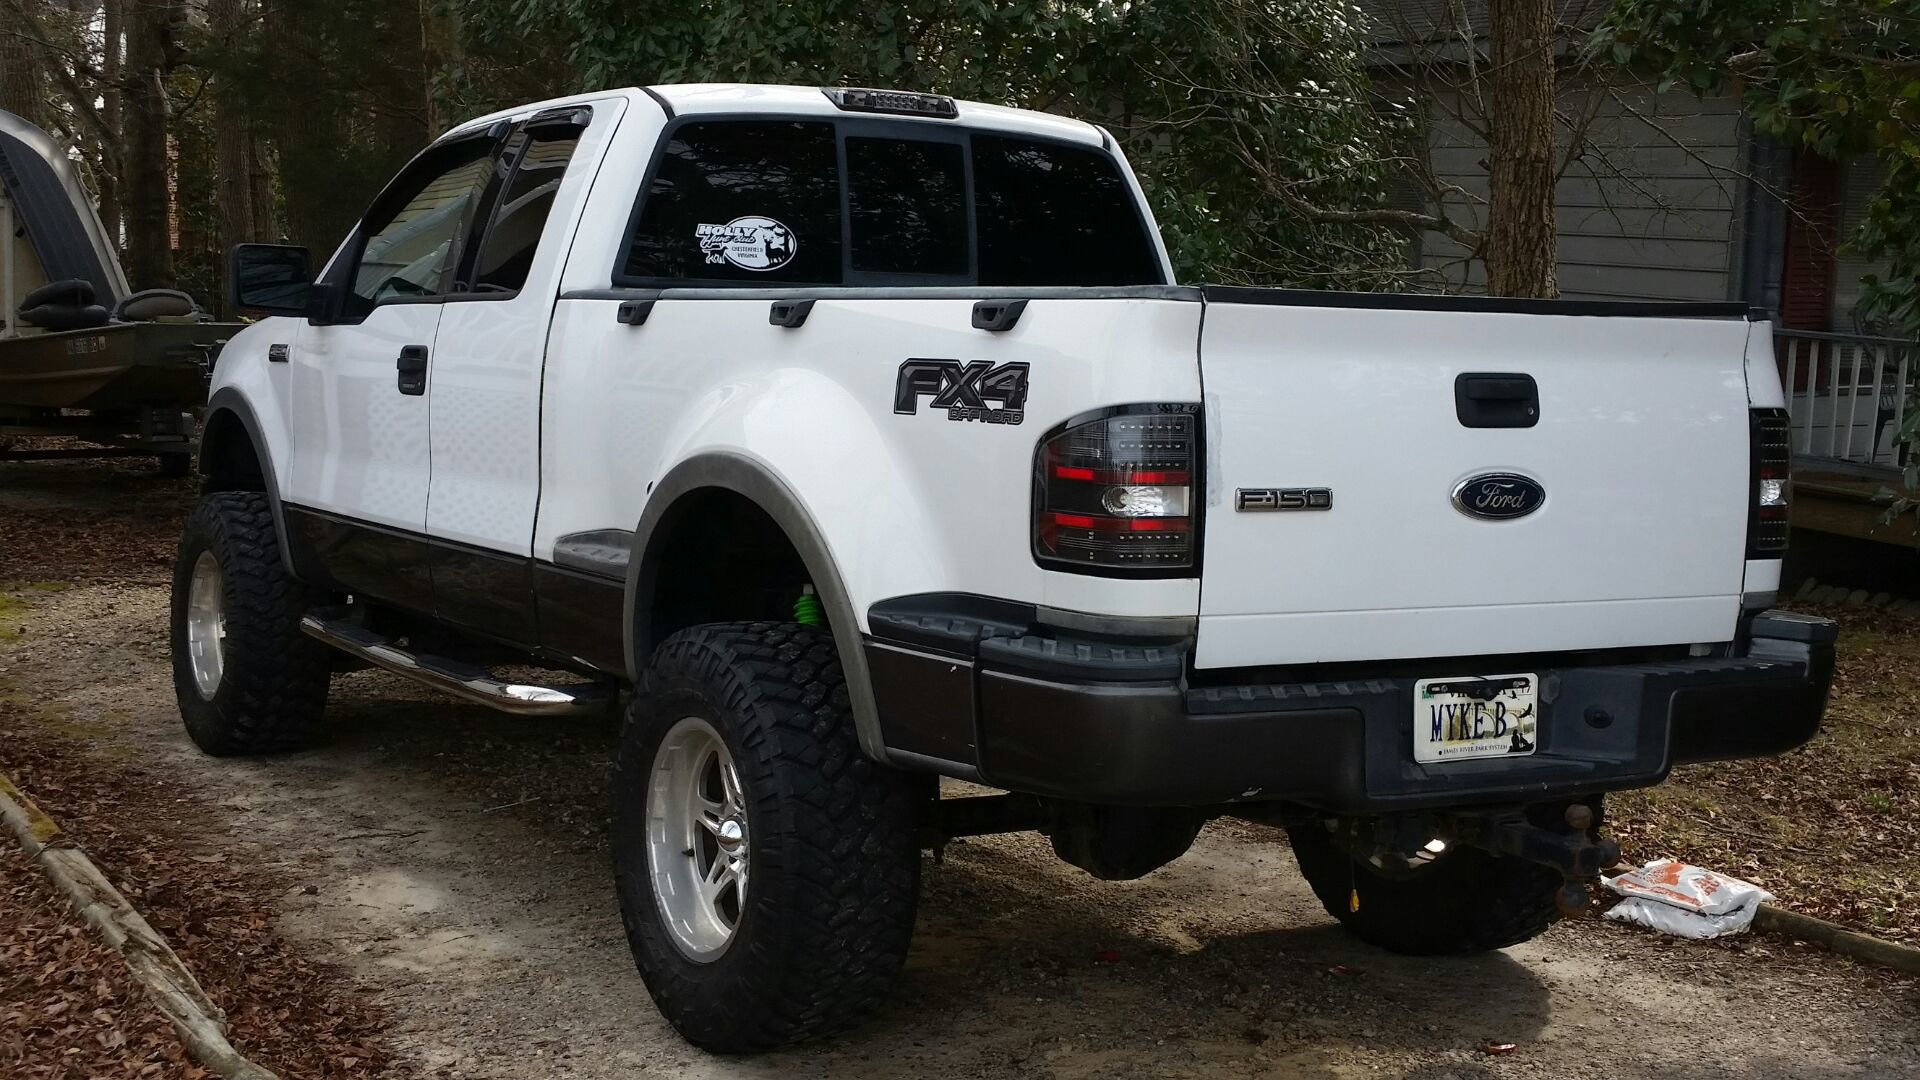 Ford Step Side F-150 FX4 Decals from Weston Ink